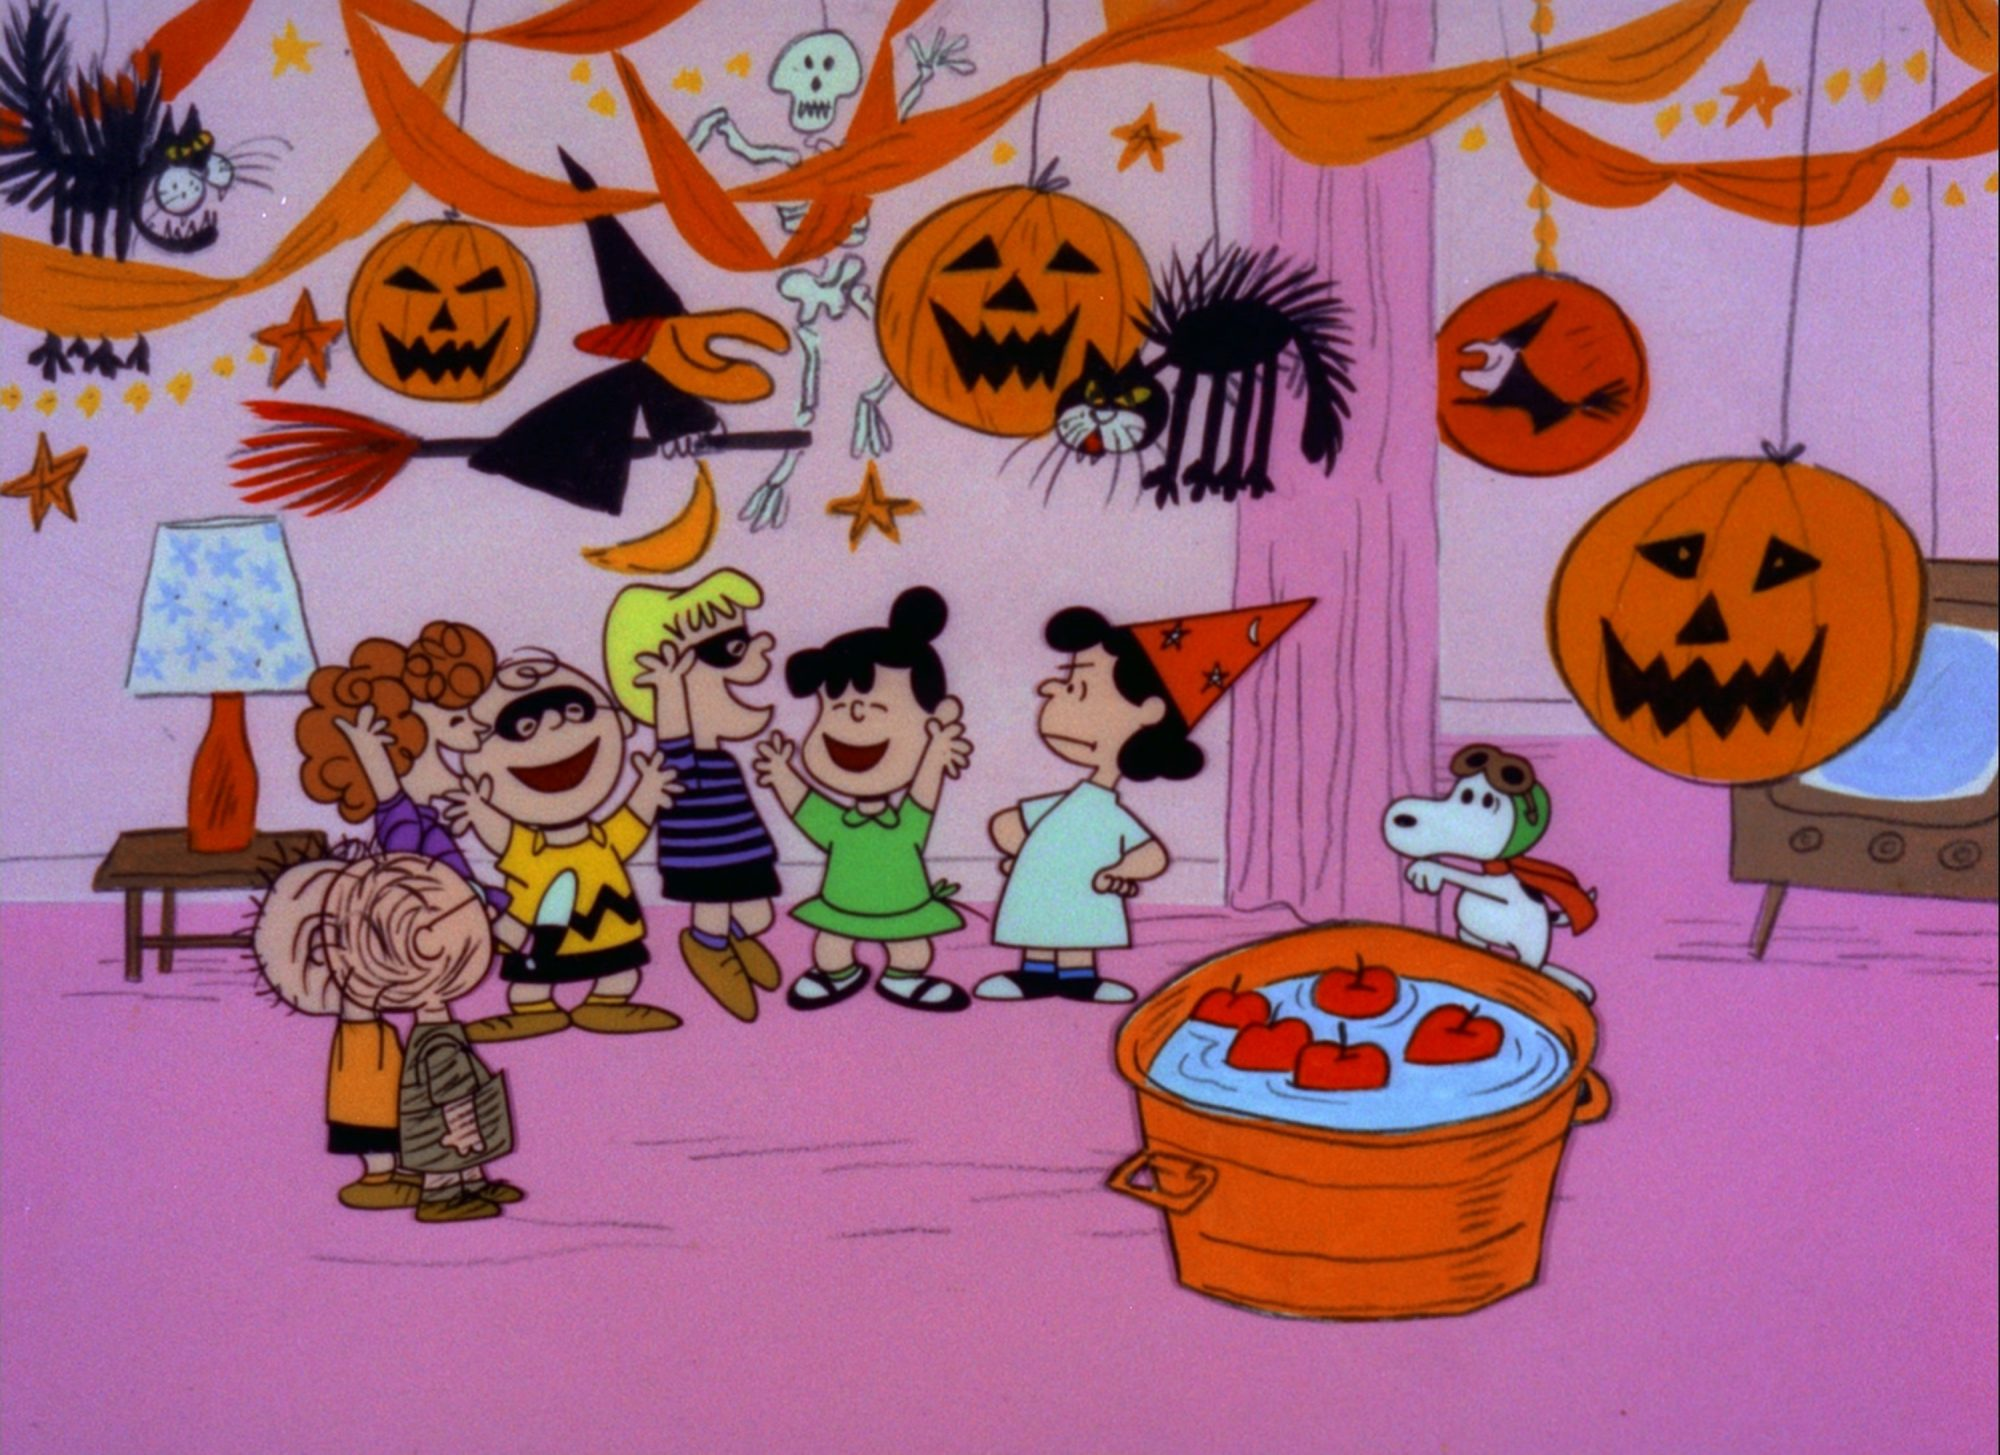 """""""IT'S THE GREAT PUMPKIN, CHARLIE BROWN"""" - The Peanuts gang celebrates Halloween, with Linus hoping that he will finally be visited by The Great Pumpkin; while Charlie Brown is invited to a Halloween party by mistake in, """"It's The Great Pumpkin, Charlie Brown"""" airing on TUESDAY, OCTOBER 26 (8:00-8:30 p.m., ET), on the Walt Disney Television via Getty Images Television Network. (Photo by Walt Disney Television via Getty Images Photo Archives/Walt Disney Television via Getty Images)"""